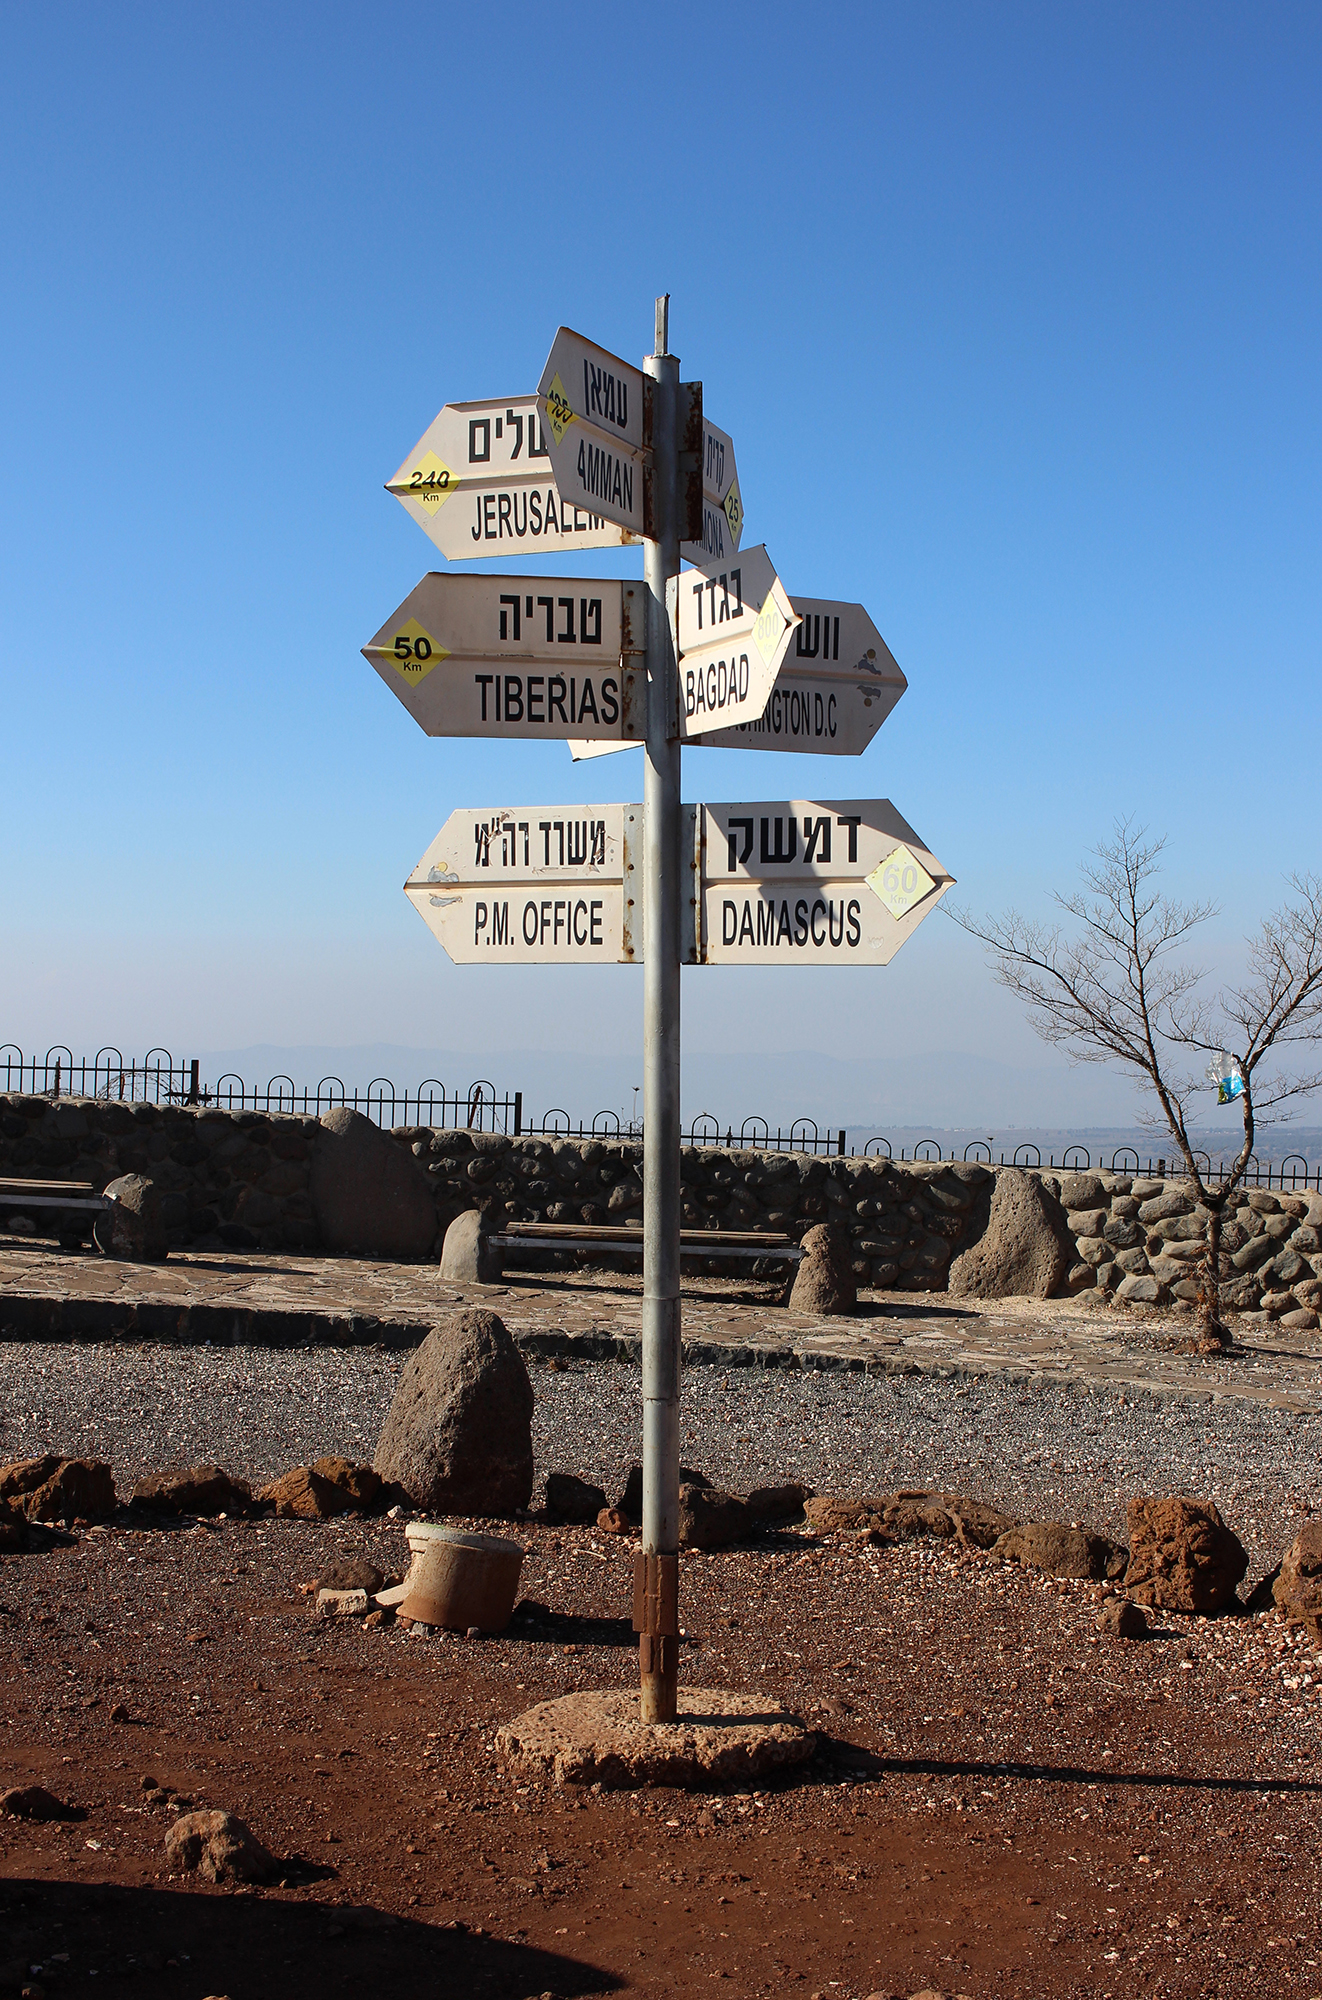 A sign at Har Bental, highest point in Golan, points to a variety of destinations. View across Gamla in Golan Heights, Israel. Travel photography by Geena Matuson @geenamatuson #thegirlmirage.